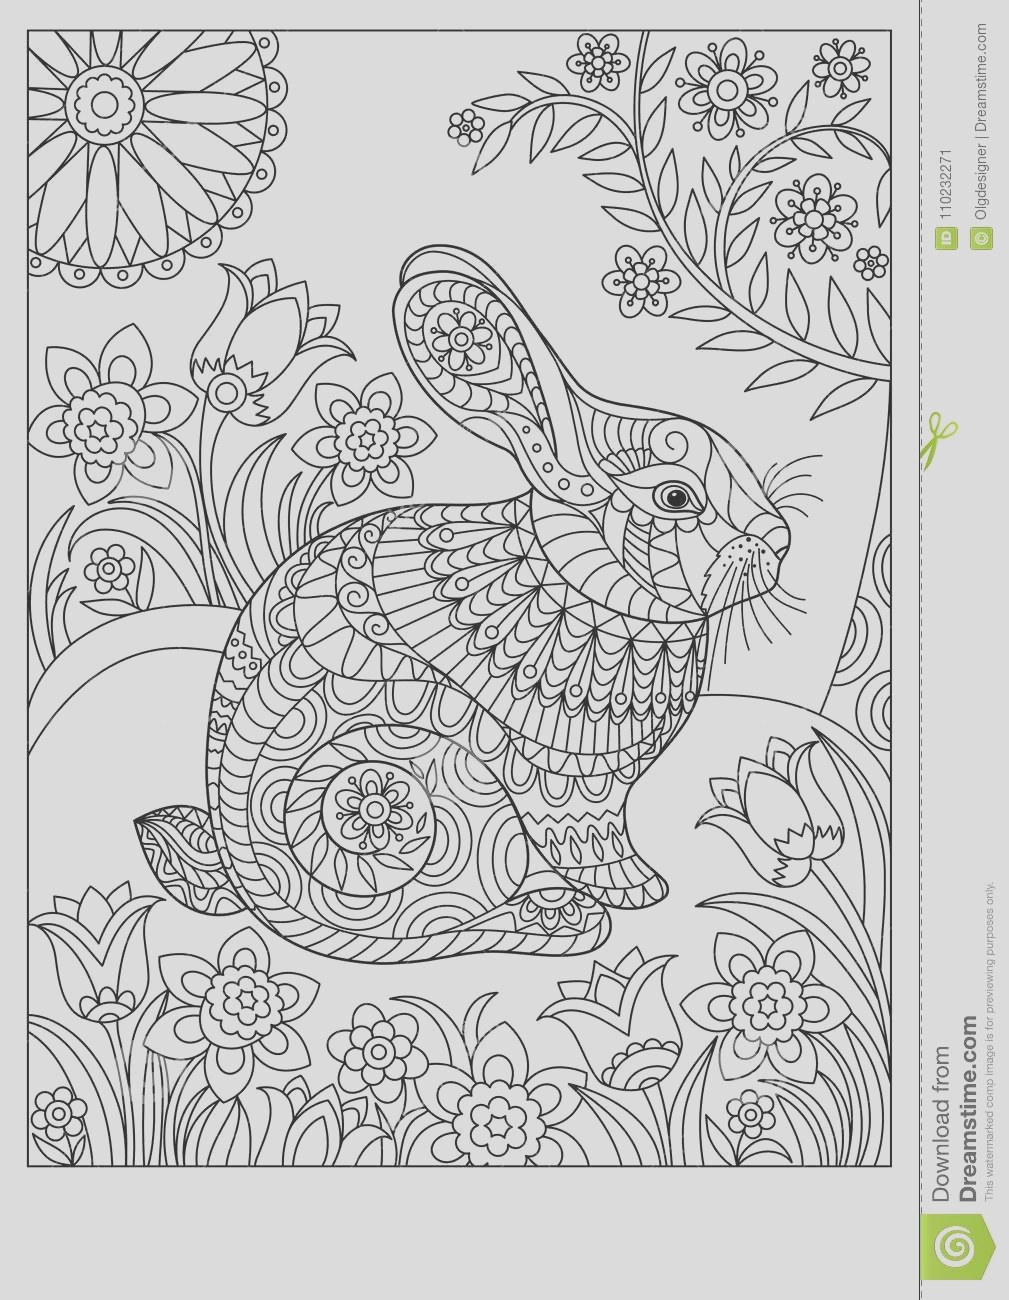 spring rabbit coloring page adult children easter background creative cute bunny black white vector illustration book image